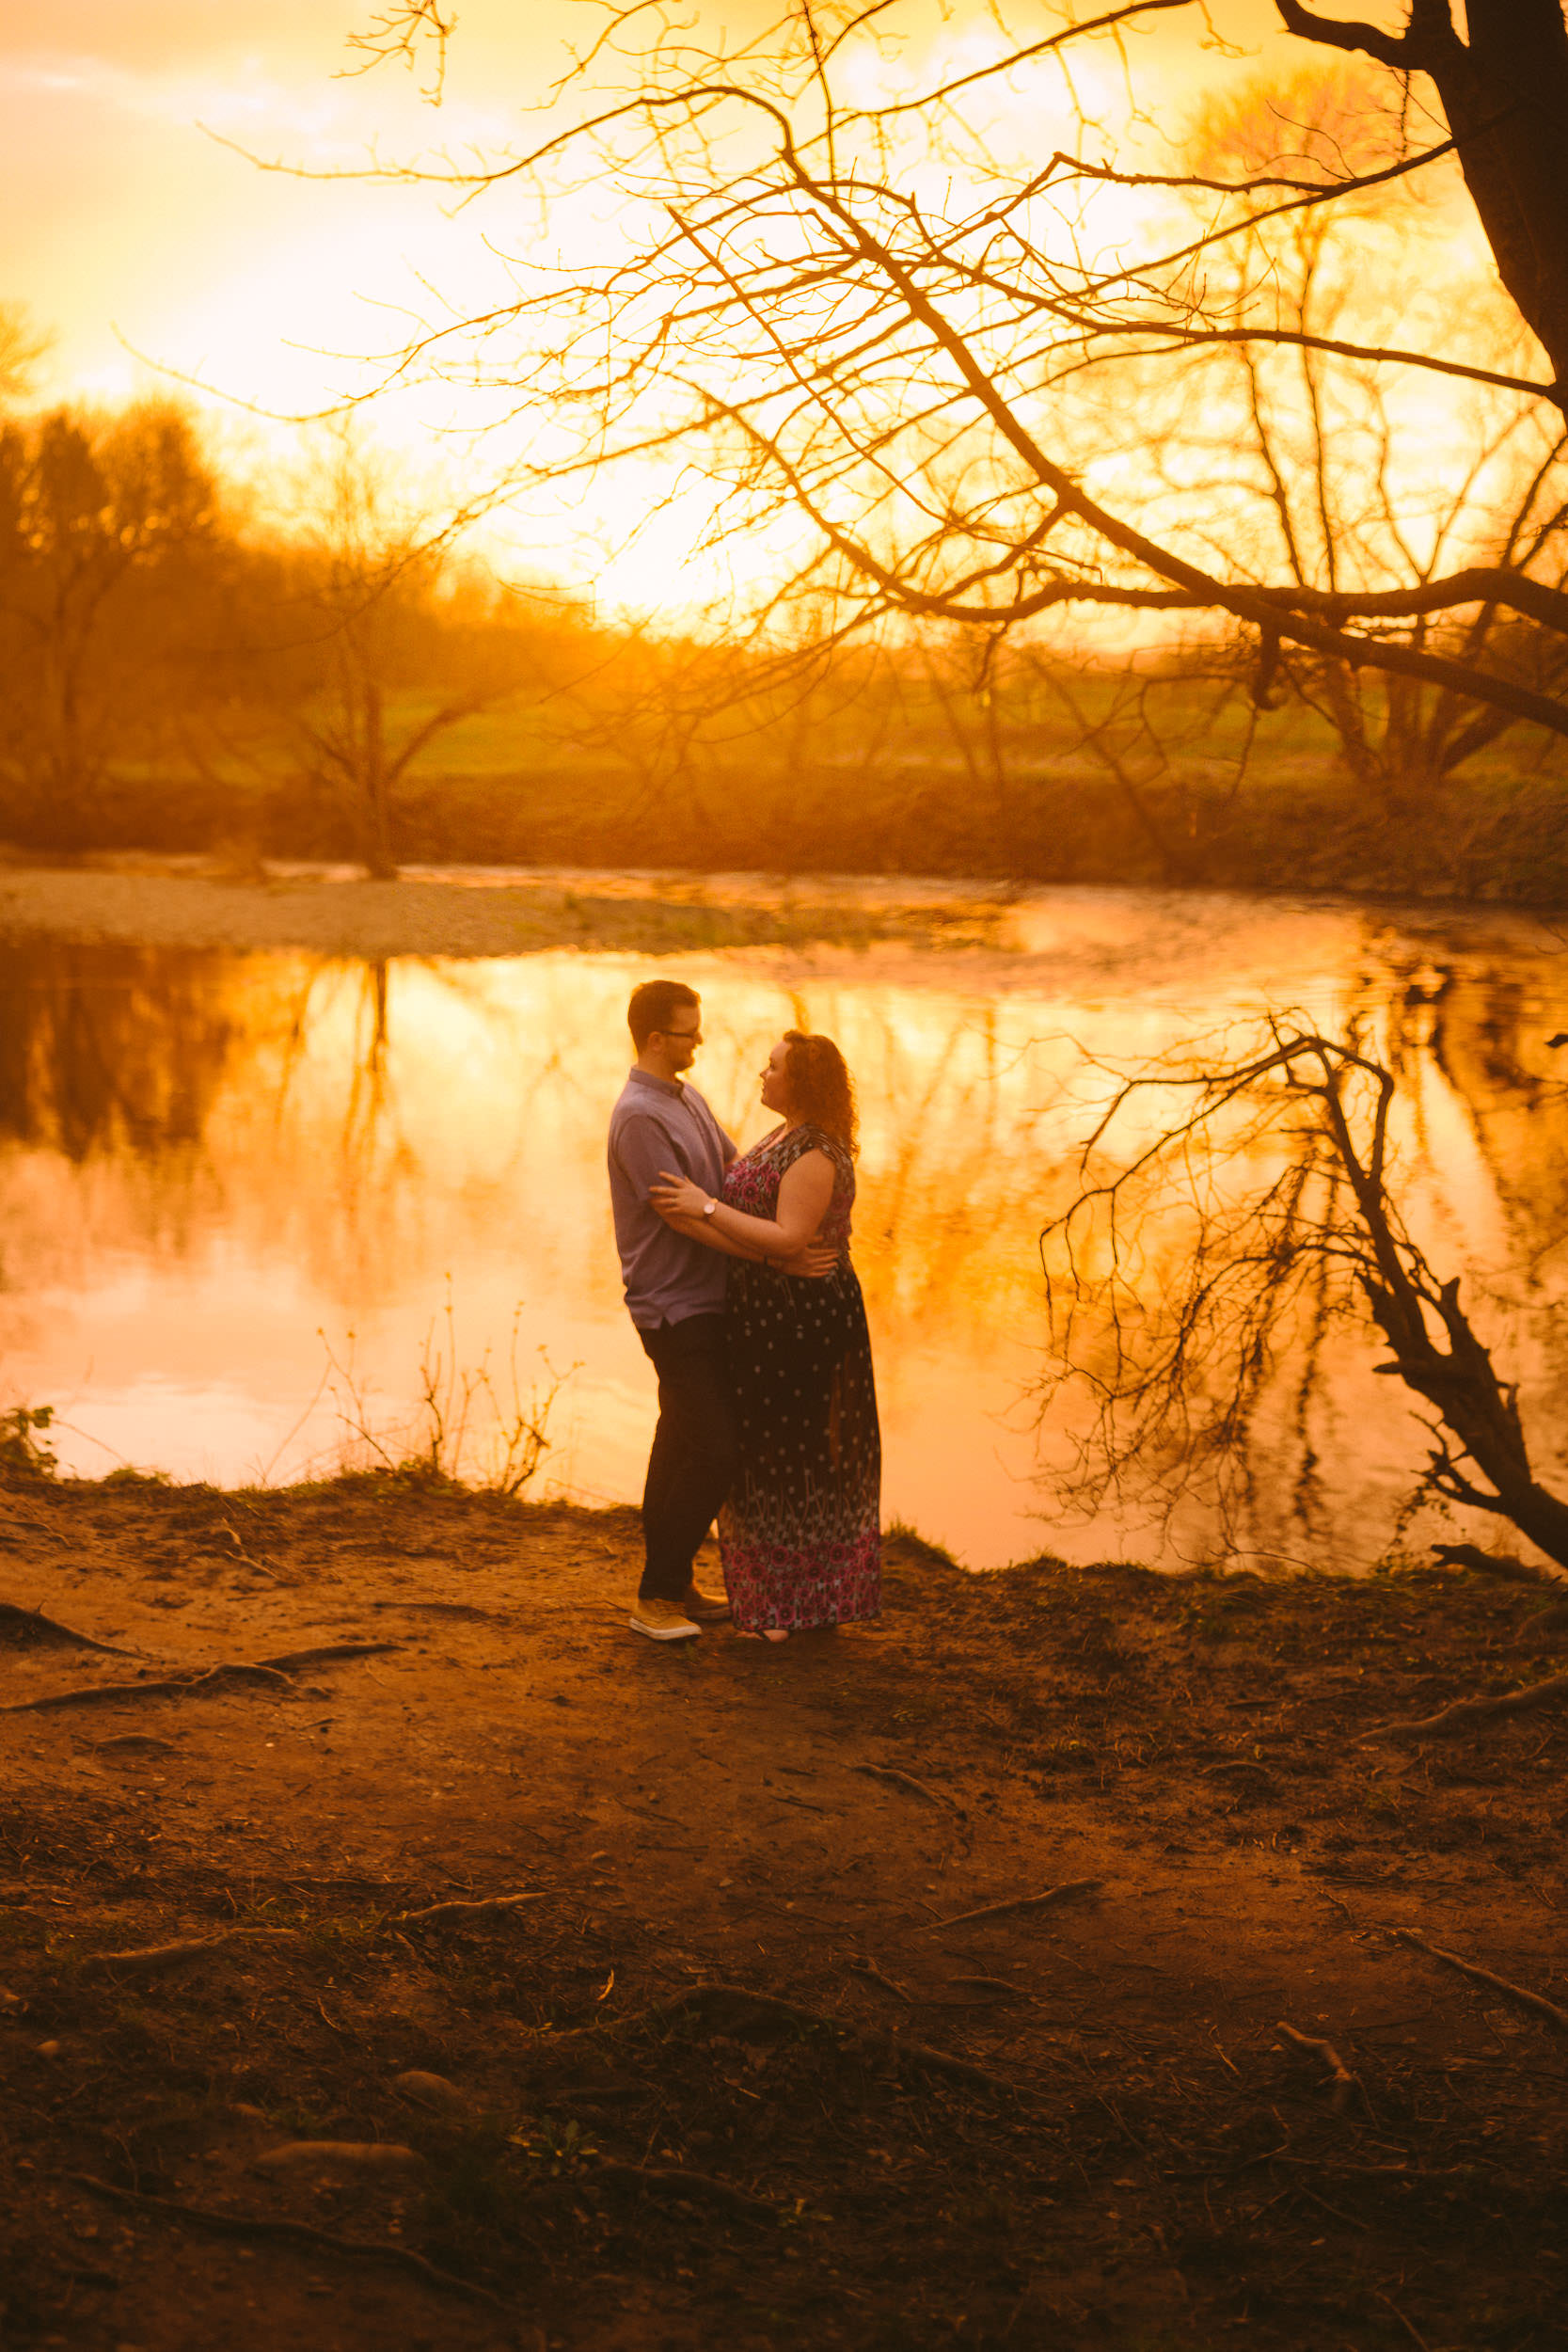 A Brenizer method photo of a couple looking into each others eyes while standing by a river in golden sunlight